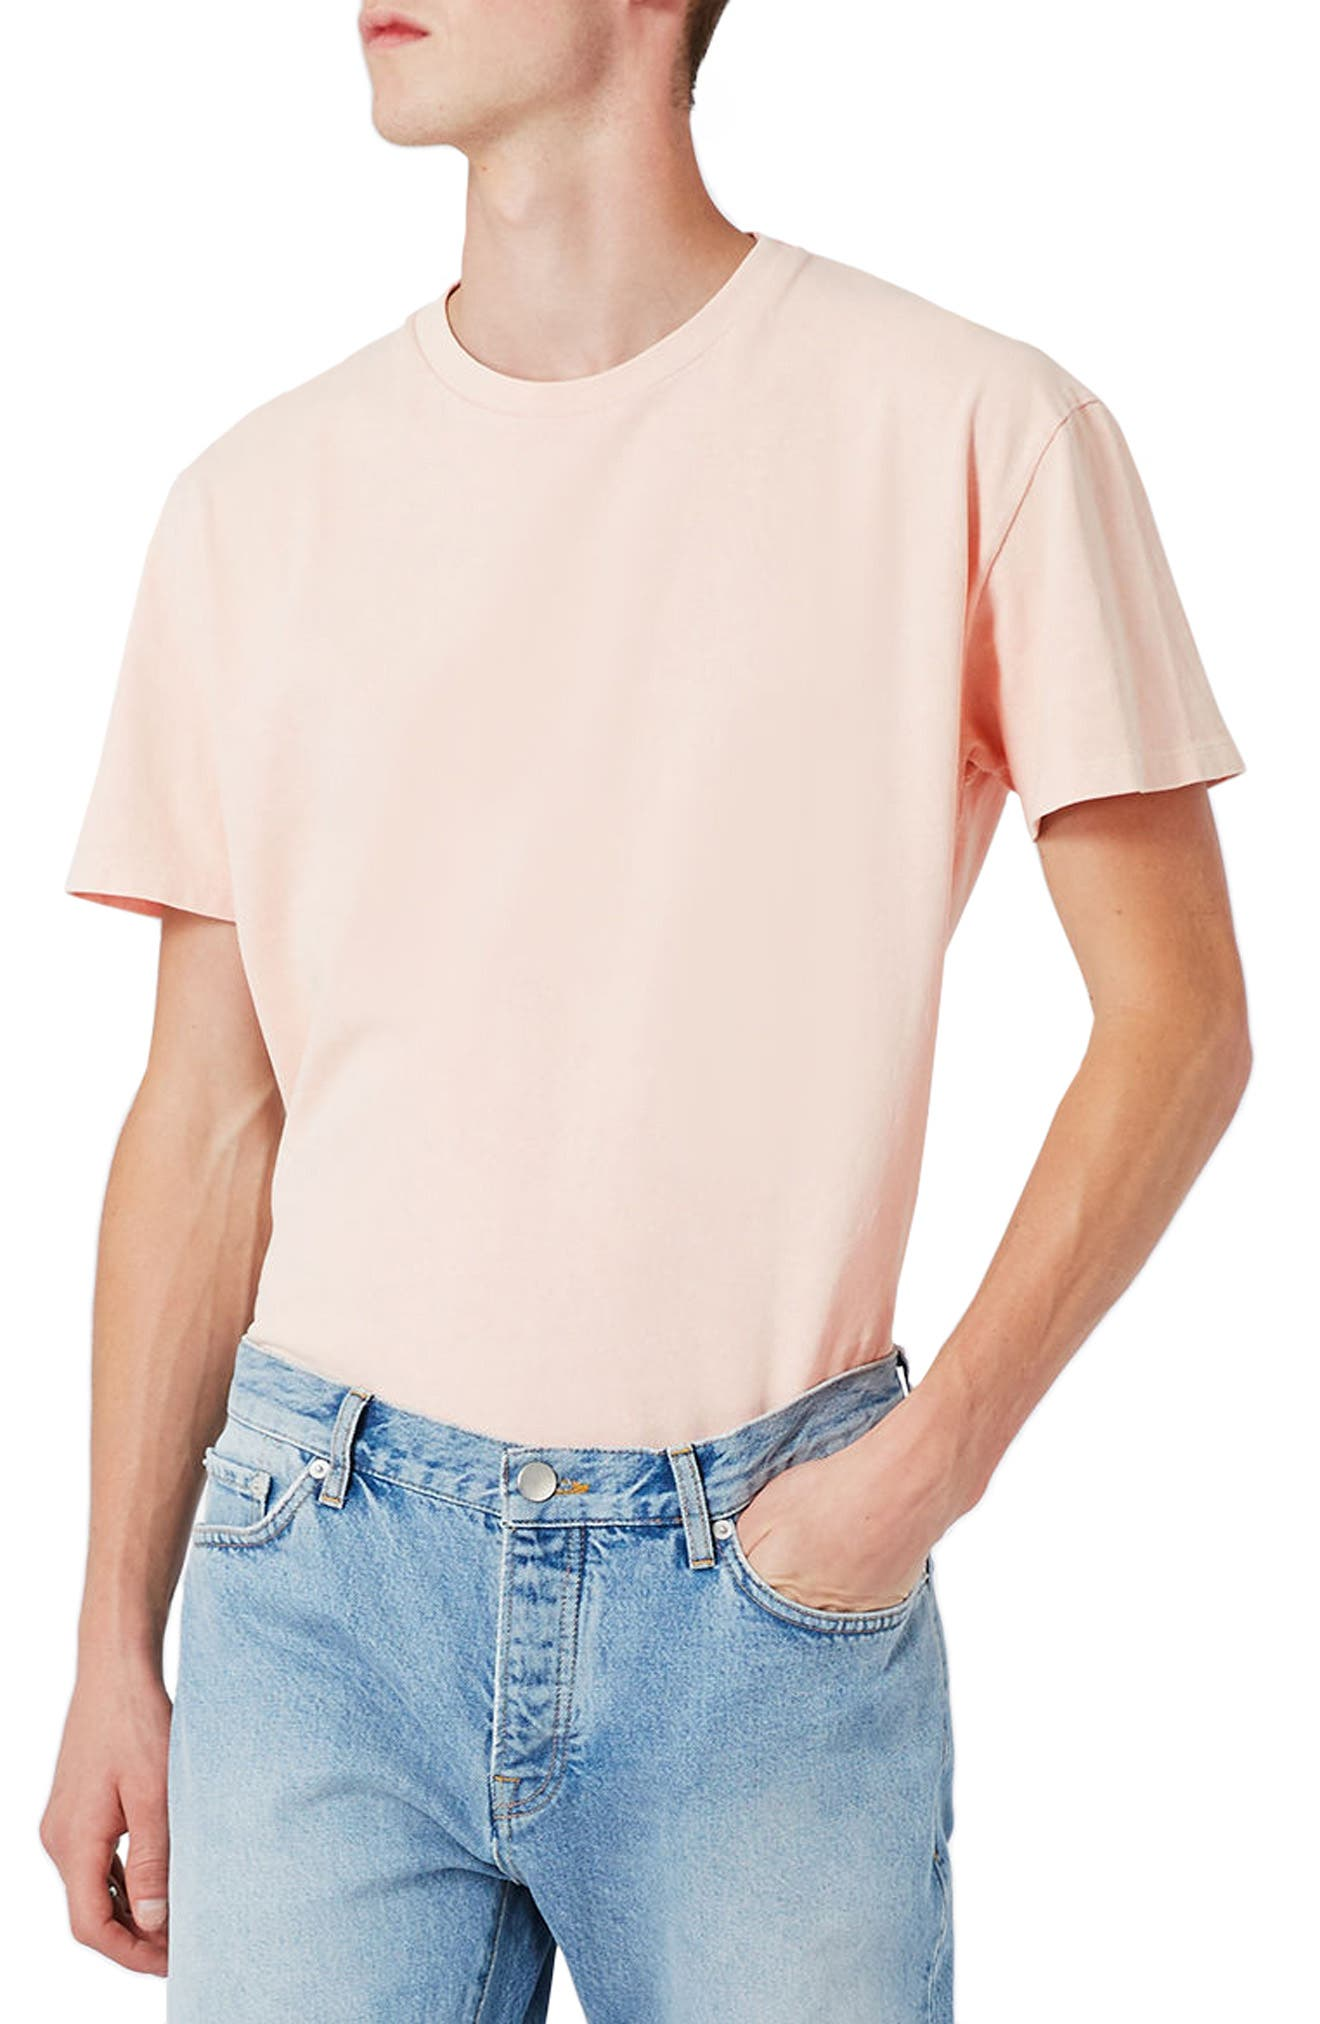 LTD Collection Washed T-Shirt,                         Main,                         color, Pink